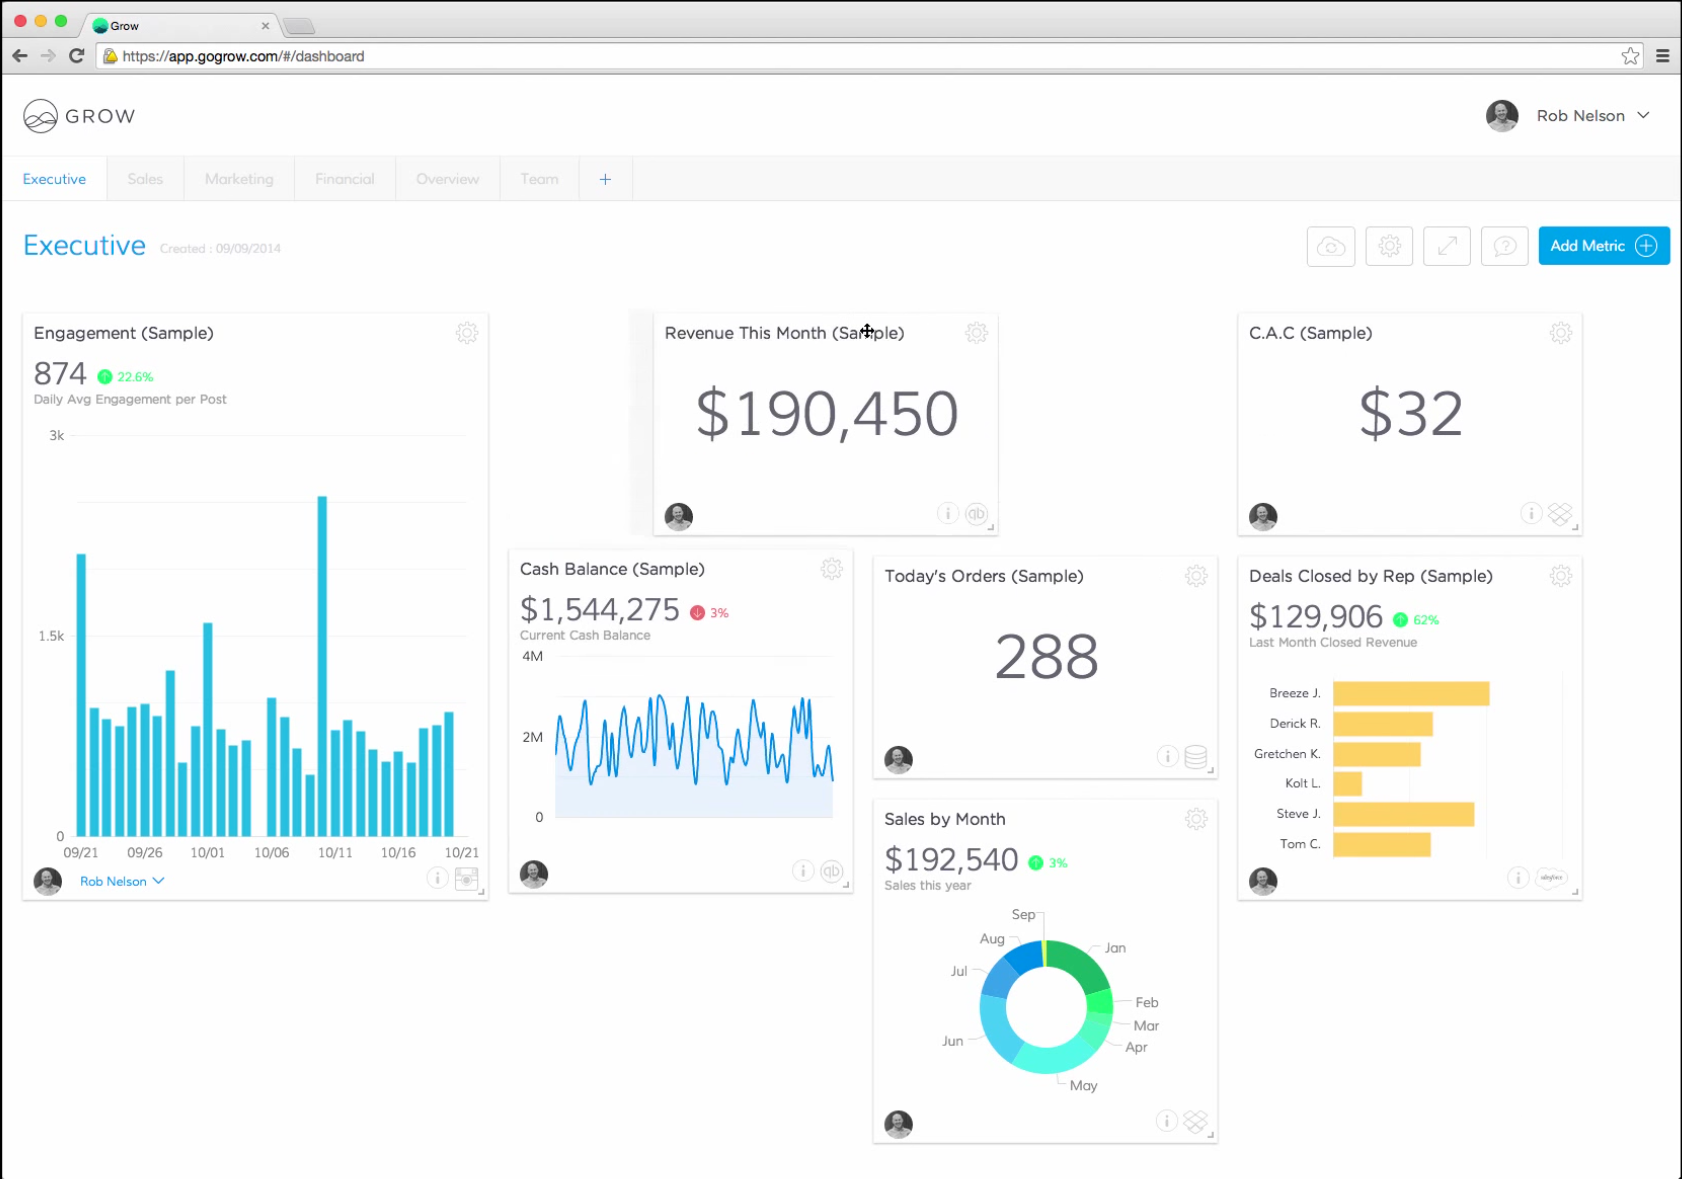 The home dashboard is made up of data metric widgets that can be resized and rearranged